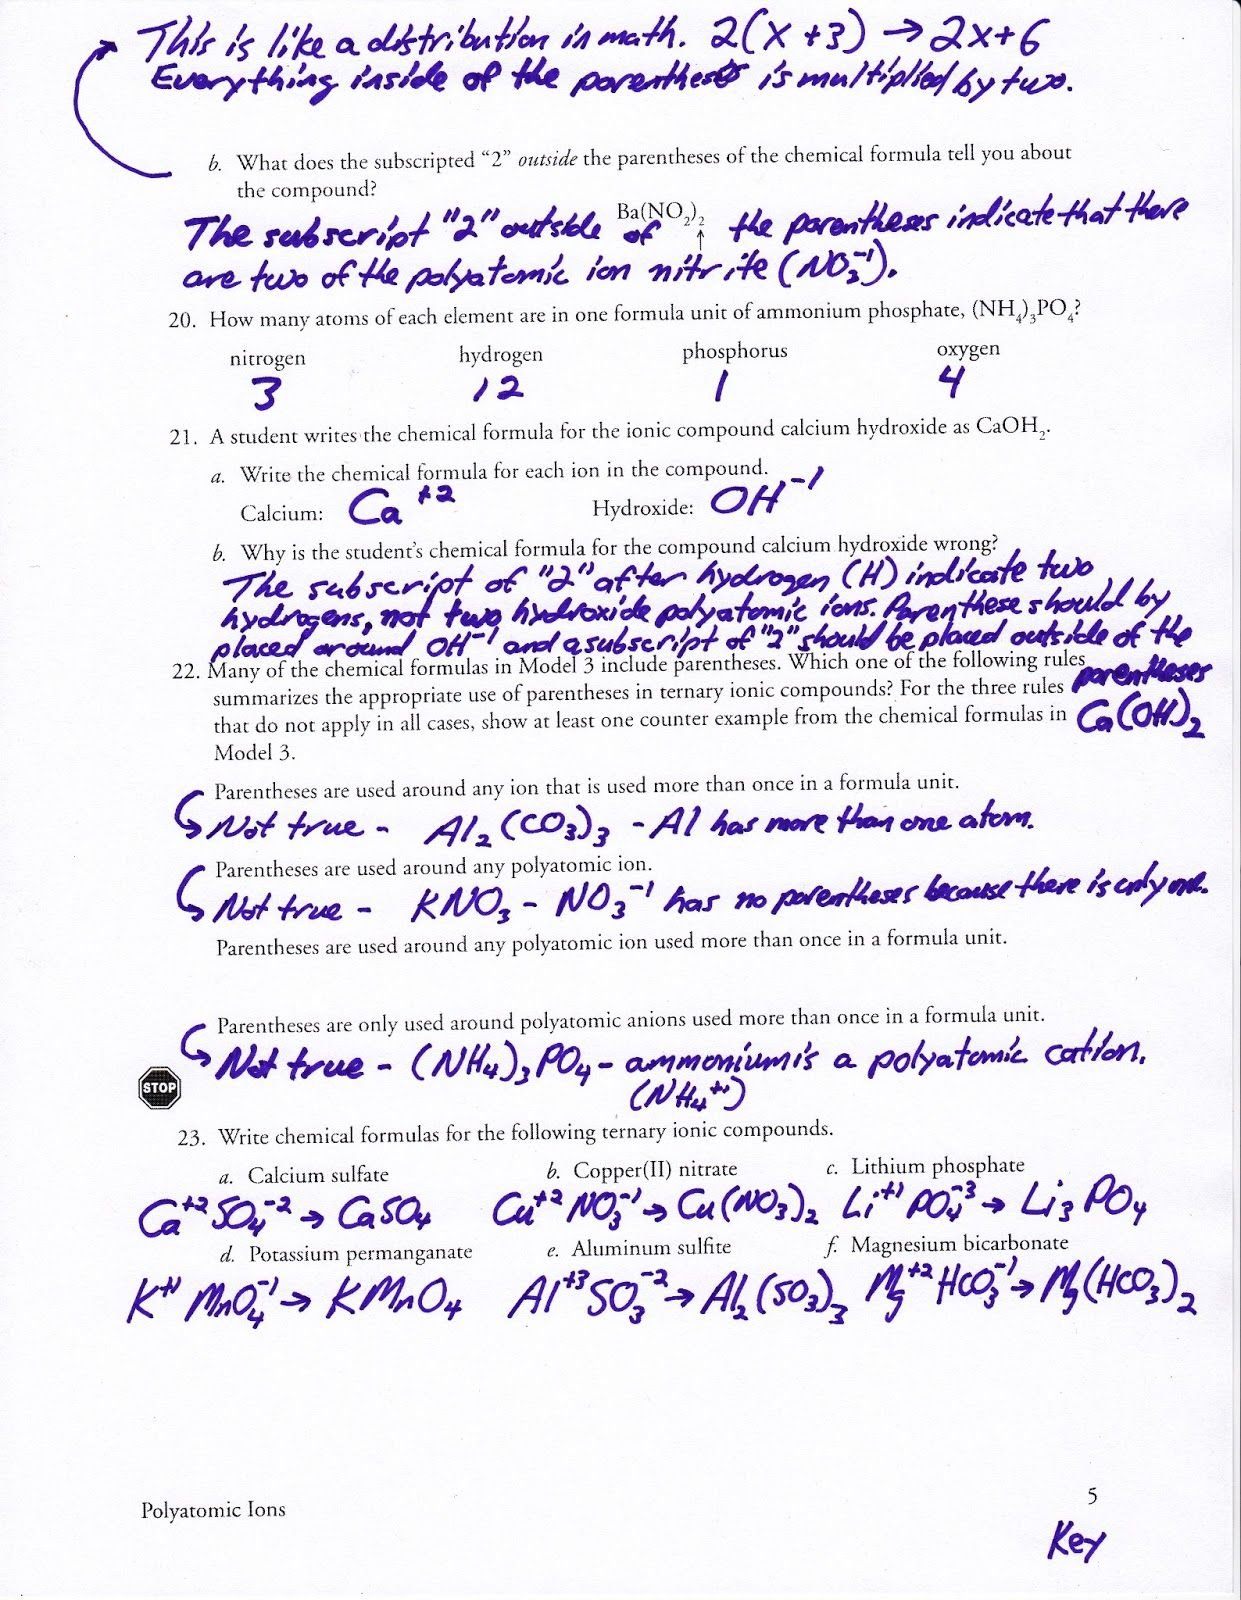 worksheet Chemical Formulas All Worksheets polyatomic ions worksheet answer key things to wear pinterest key